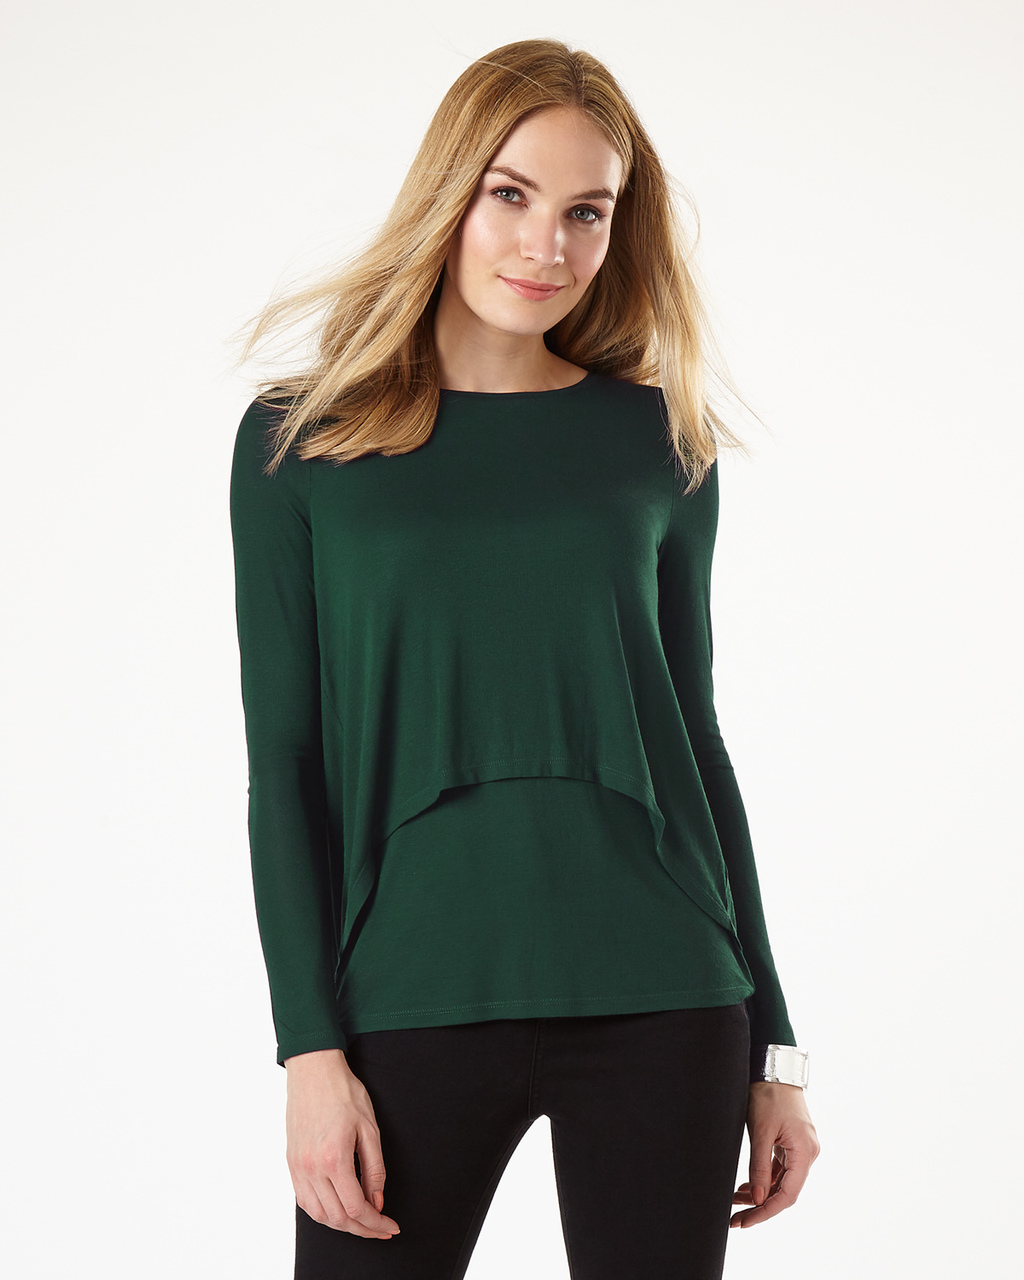 Dita Double Layer Top - pattern: plain; style: t-shirt; predominant colour: dark green; occasions: casual, creative work; length: standard; fibres: polyester/polyamide - stretch; fit: body skimming; neckline: crew; sleeve length: long sleeve; sleeve style: standard; pattern type: fabric; texture group: jersey - stretchy/drapey; season: s/s 2016